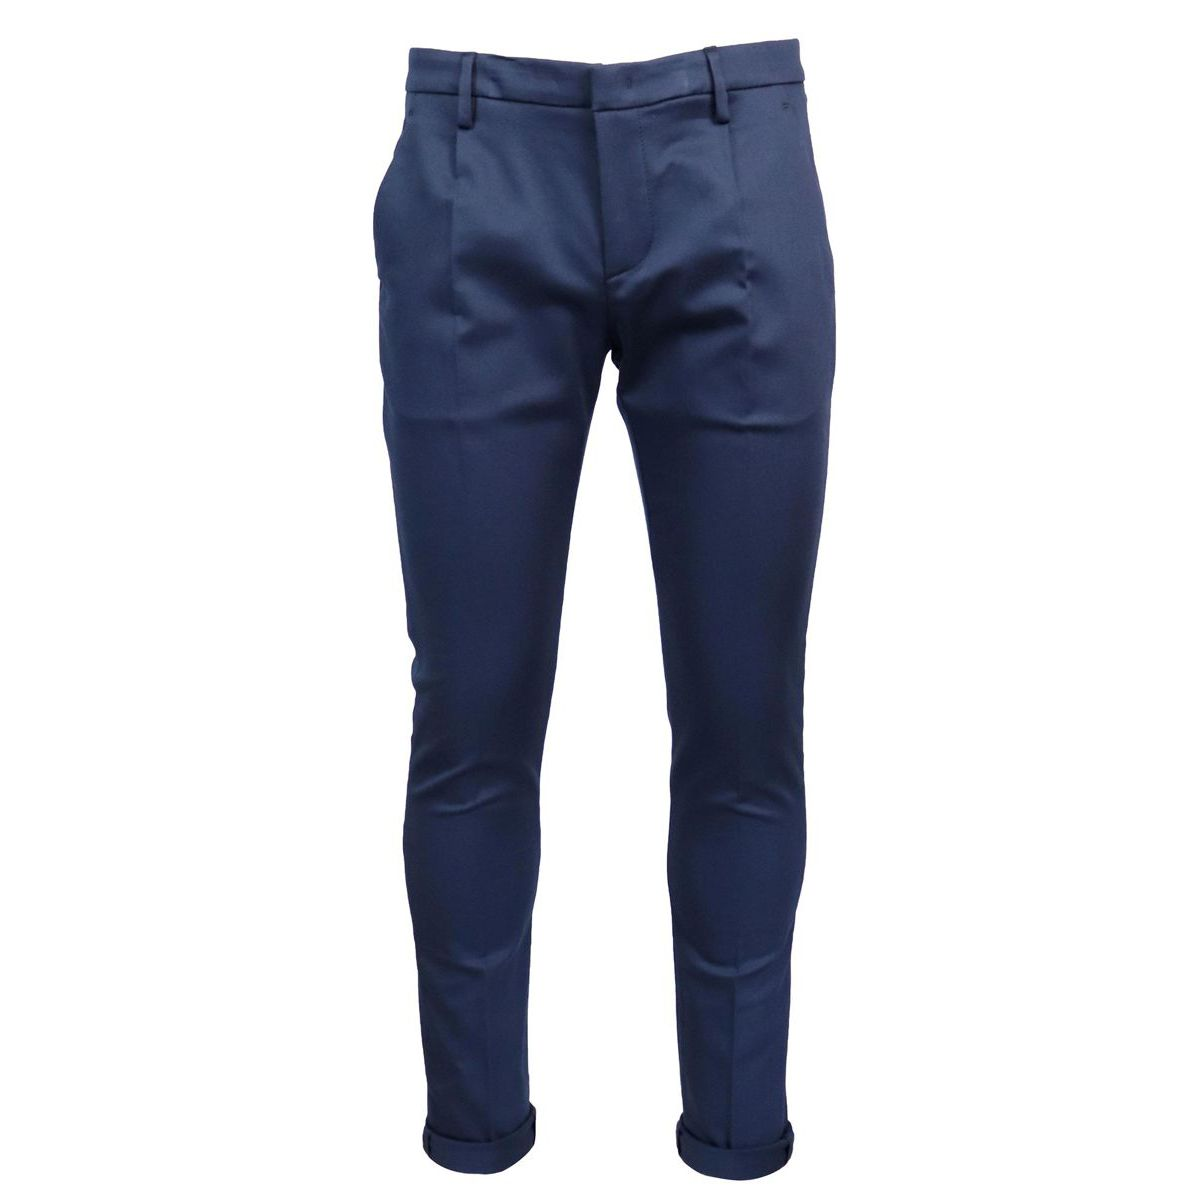 Gaubert trousers pocket america Blue Dondup